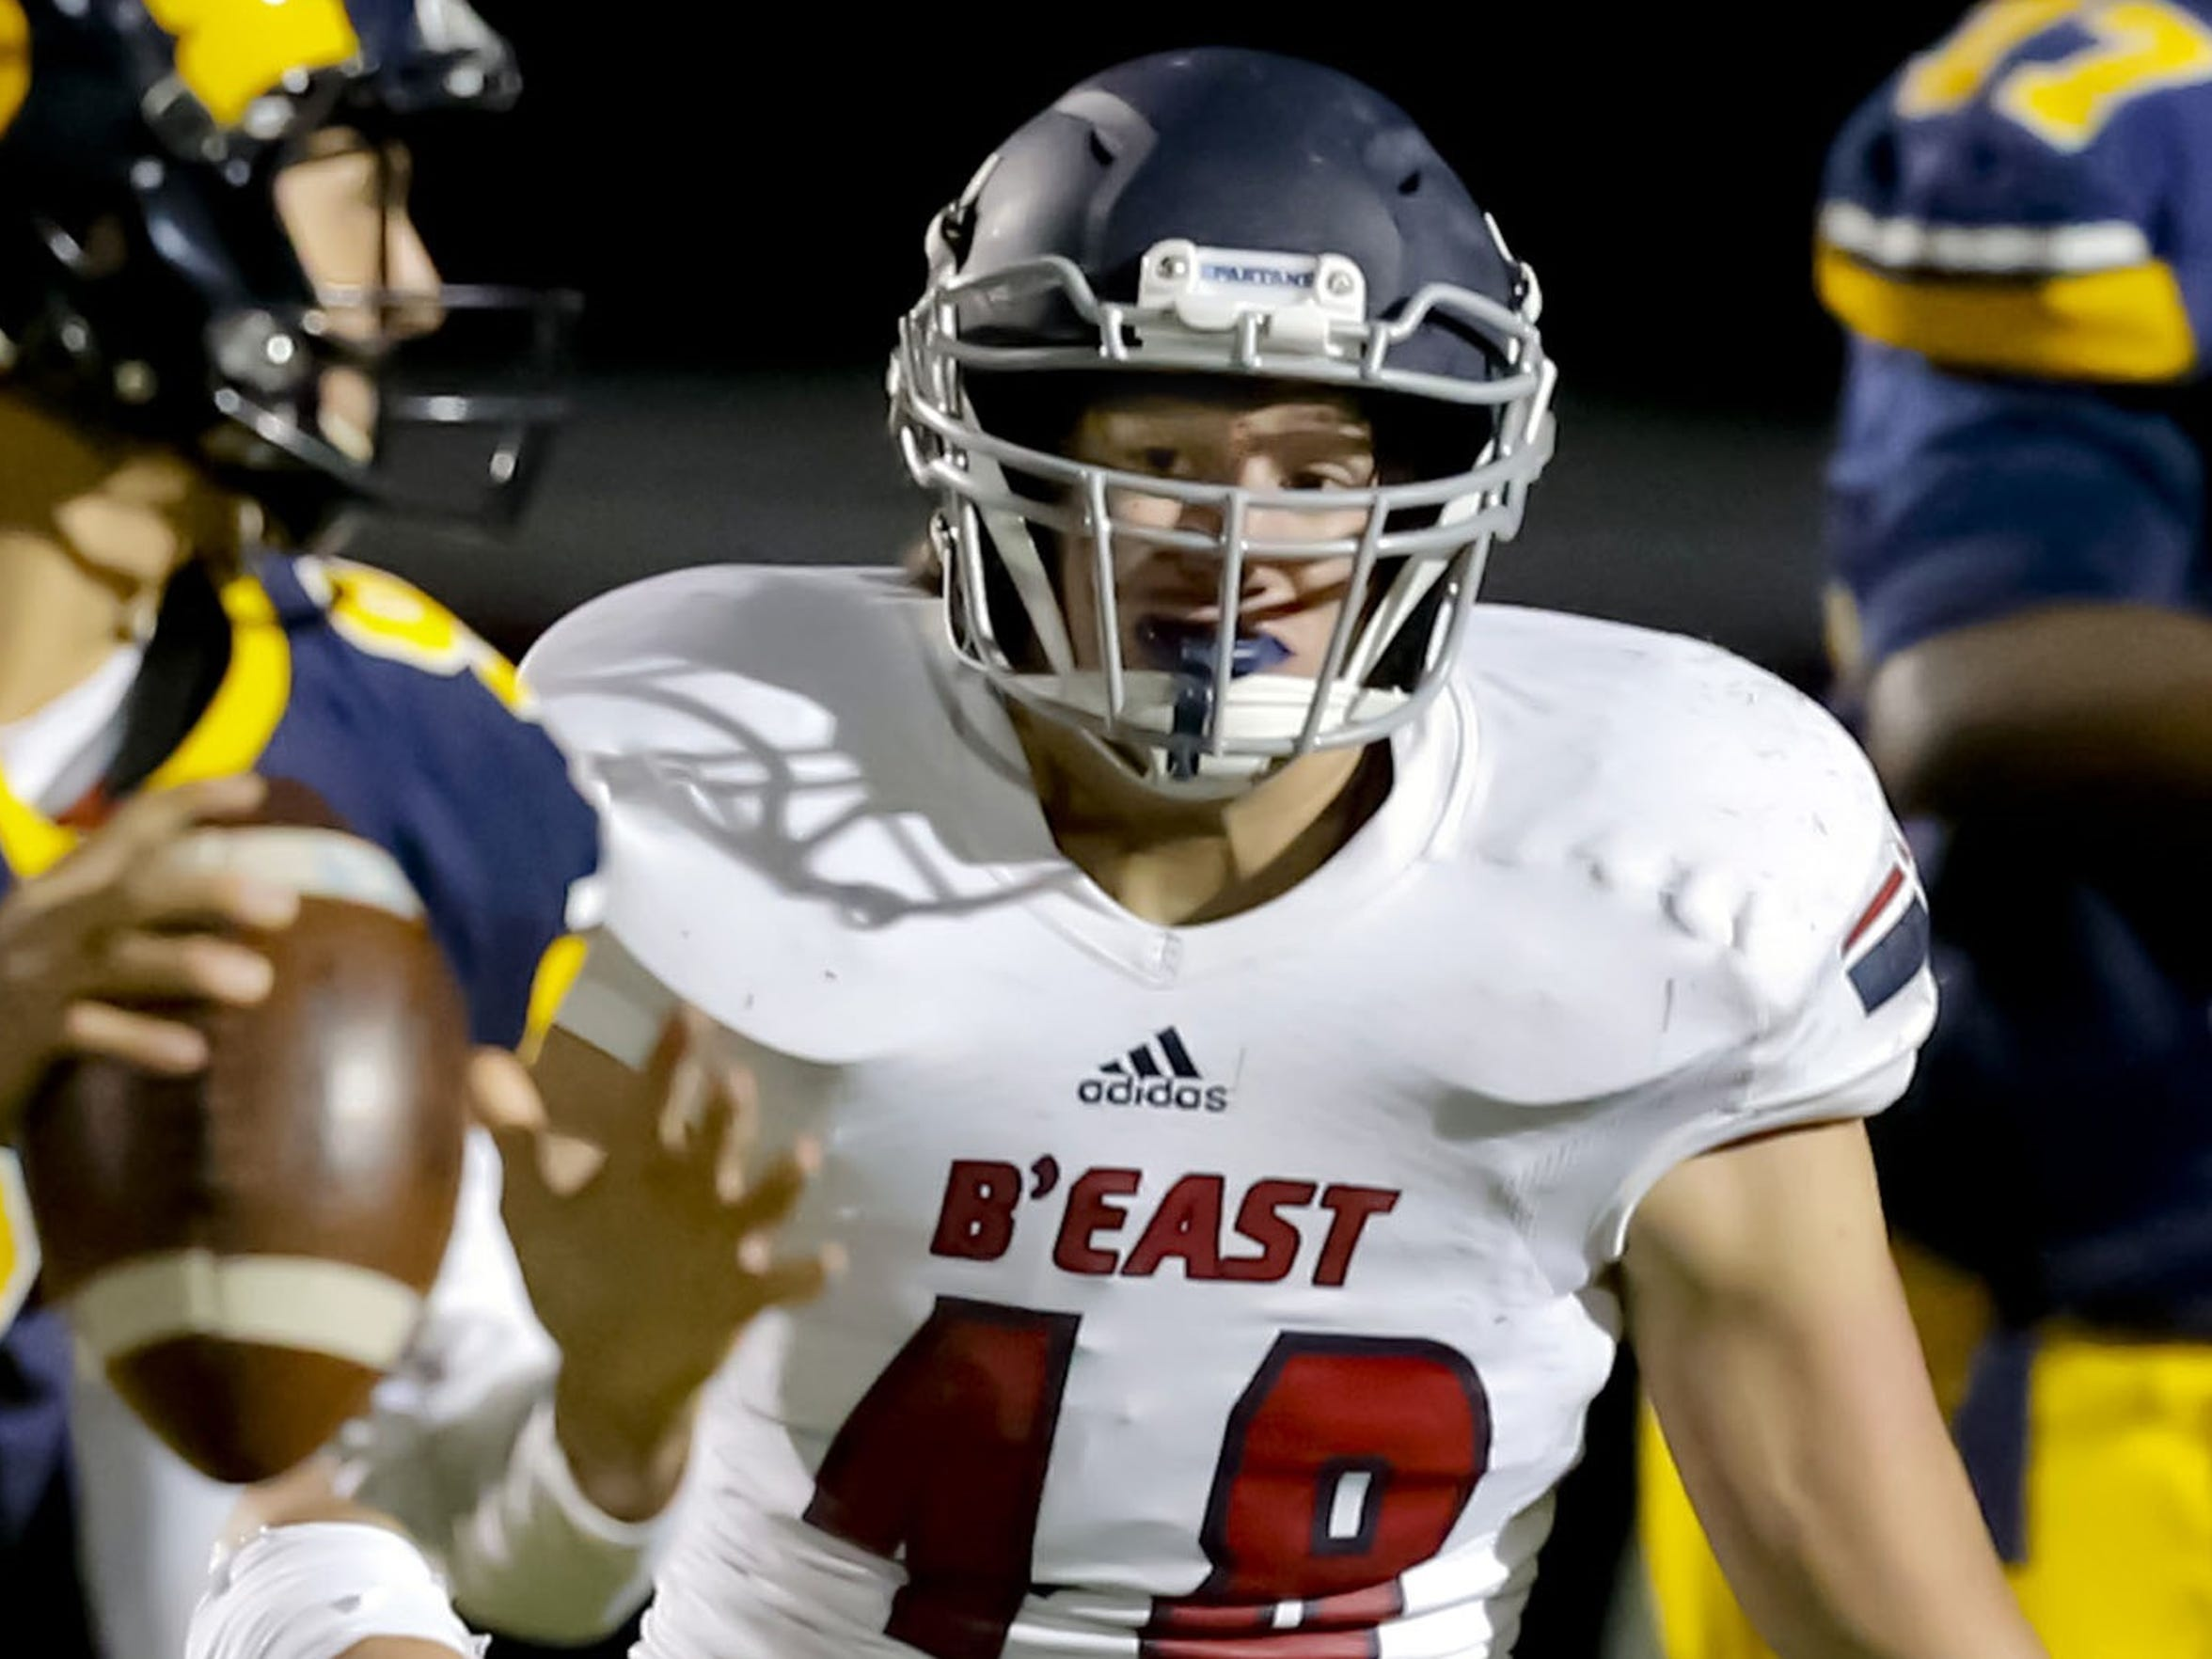 Bradley Dati and the Brookfield East defense had five